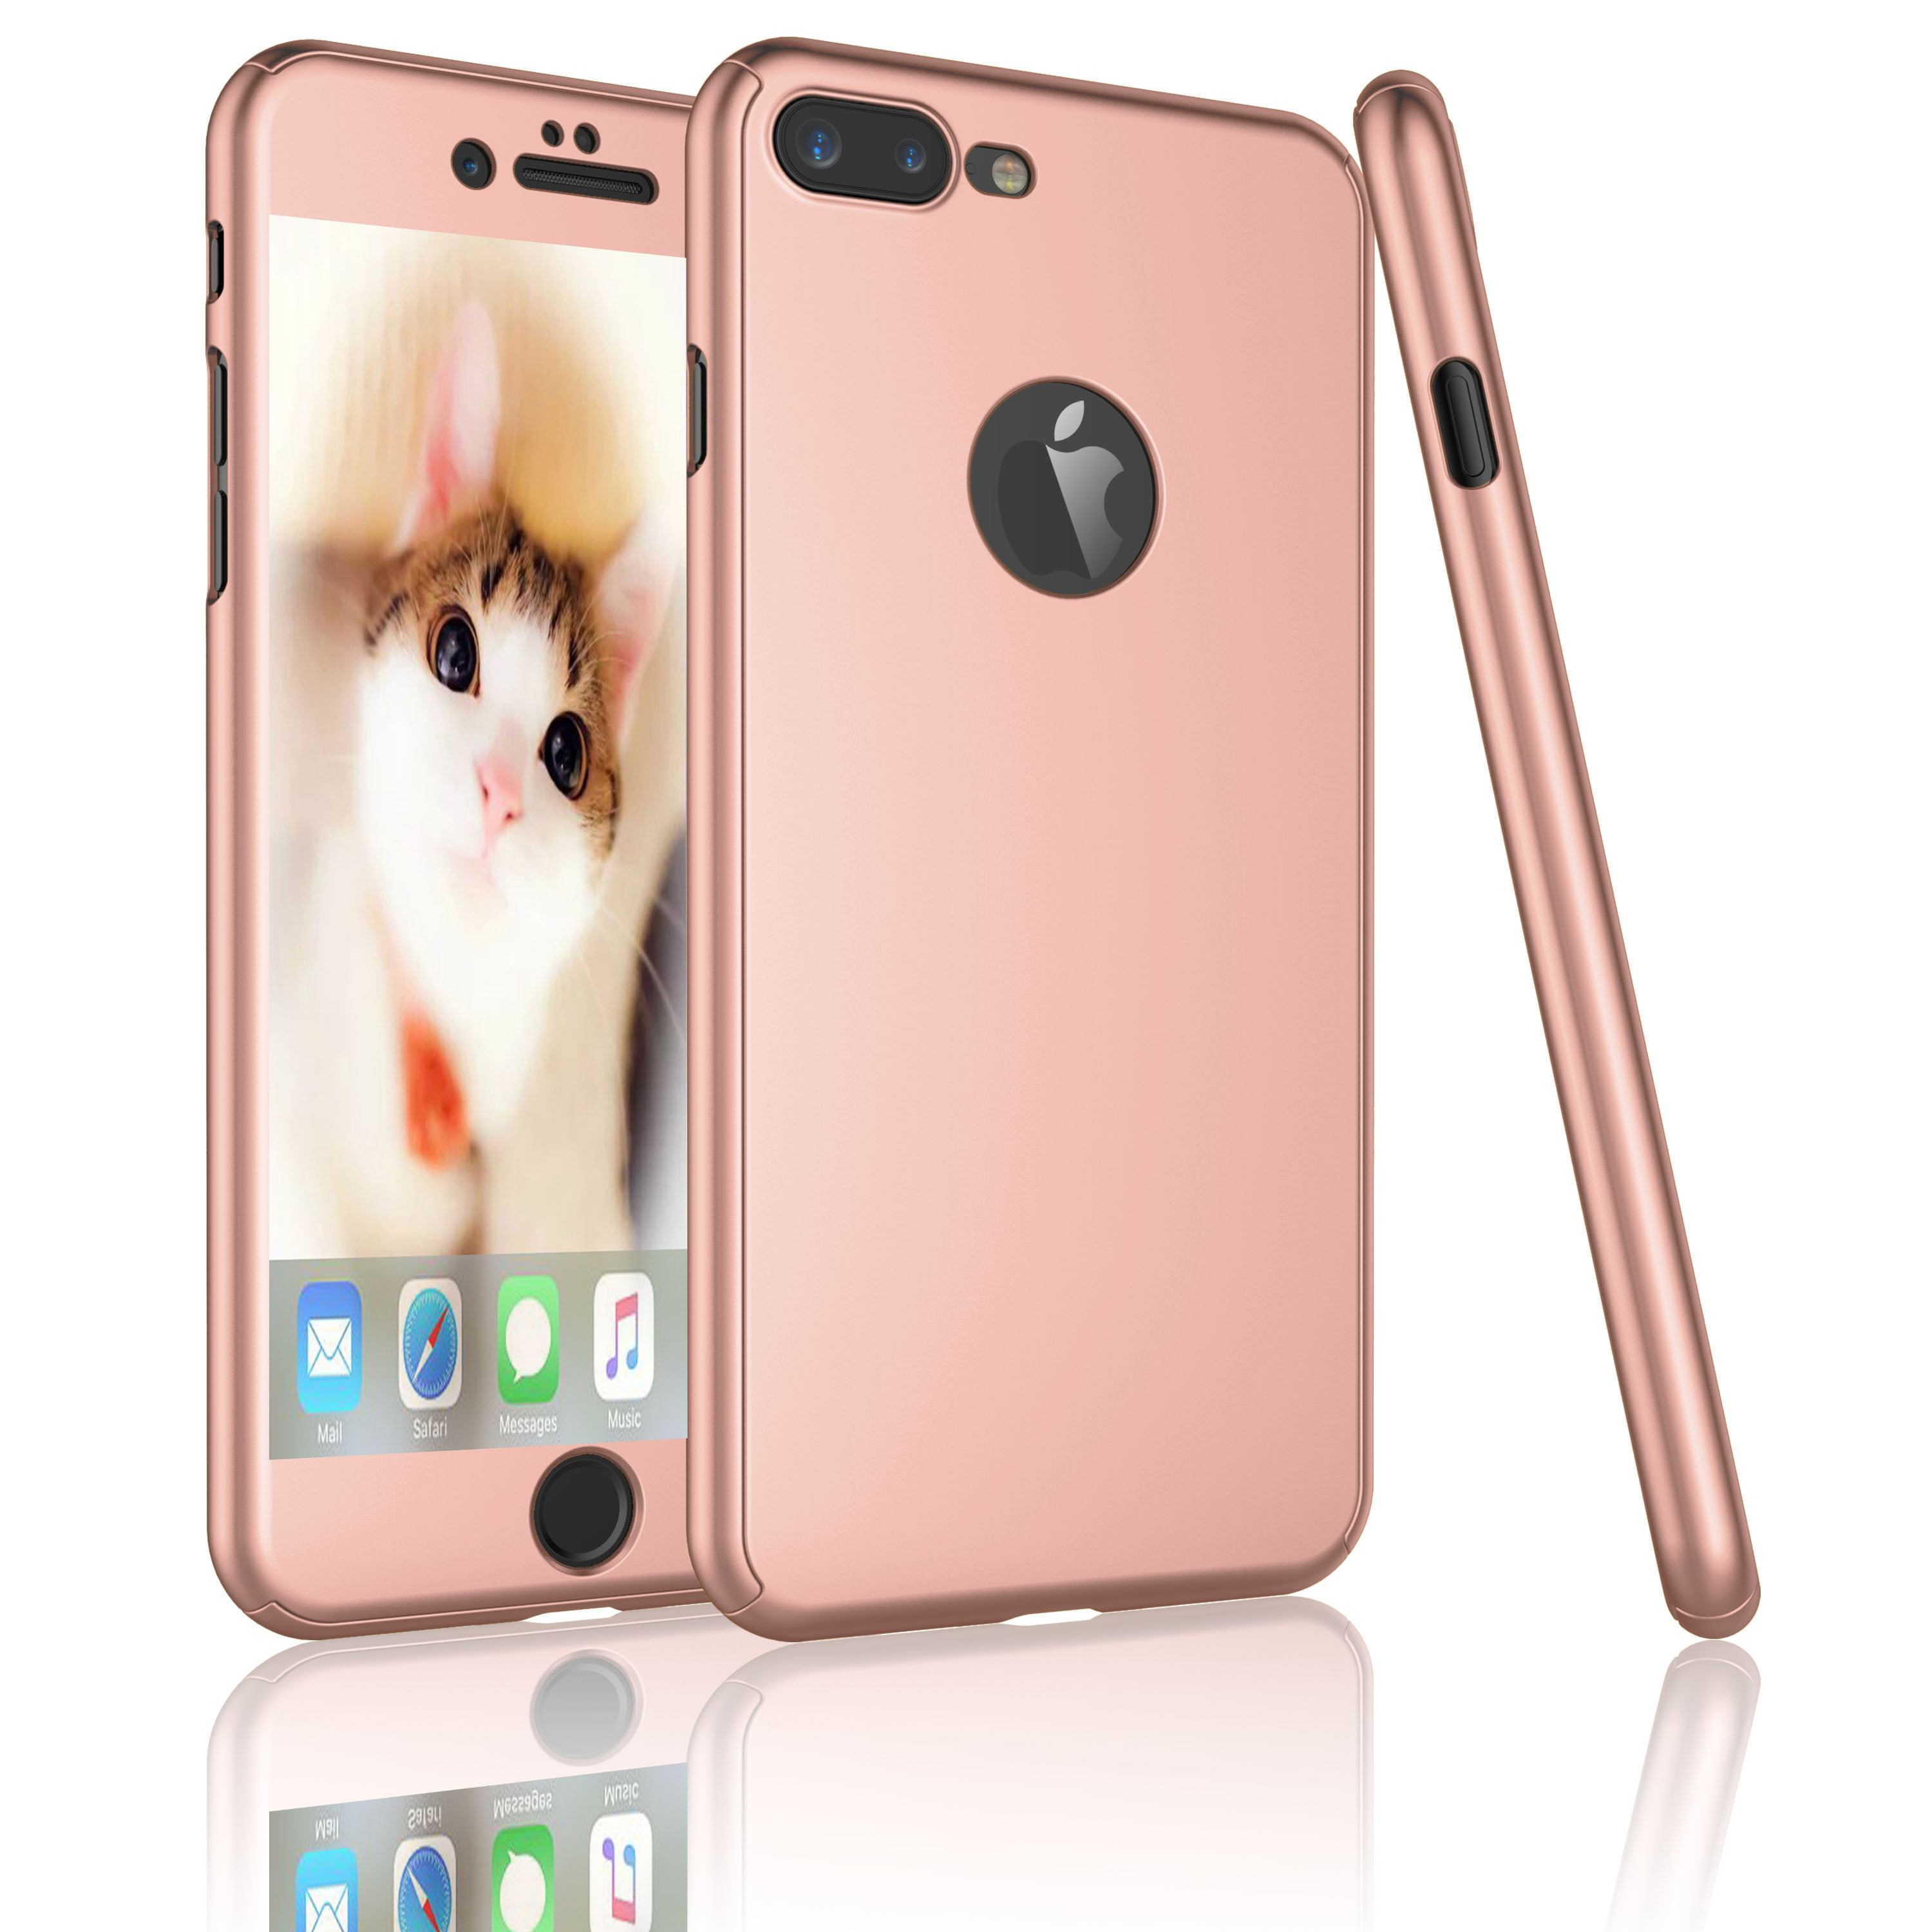 iPhone 7 Plus Case, Tekcoo [T360 HY] Ultra Thin Full Body Coverage Protection Scratch Proof Hard Slim Hybrid Cover Shell With Tempered Glass Screen ...